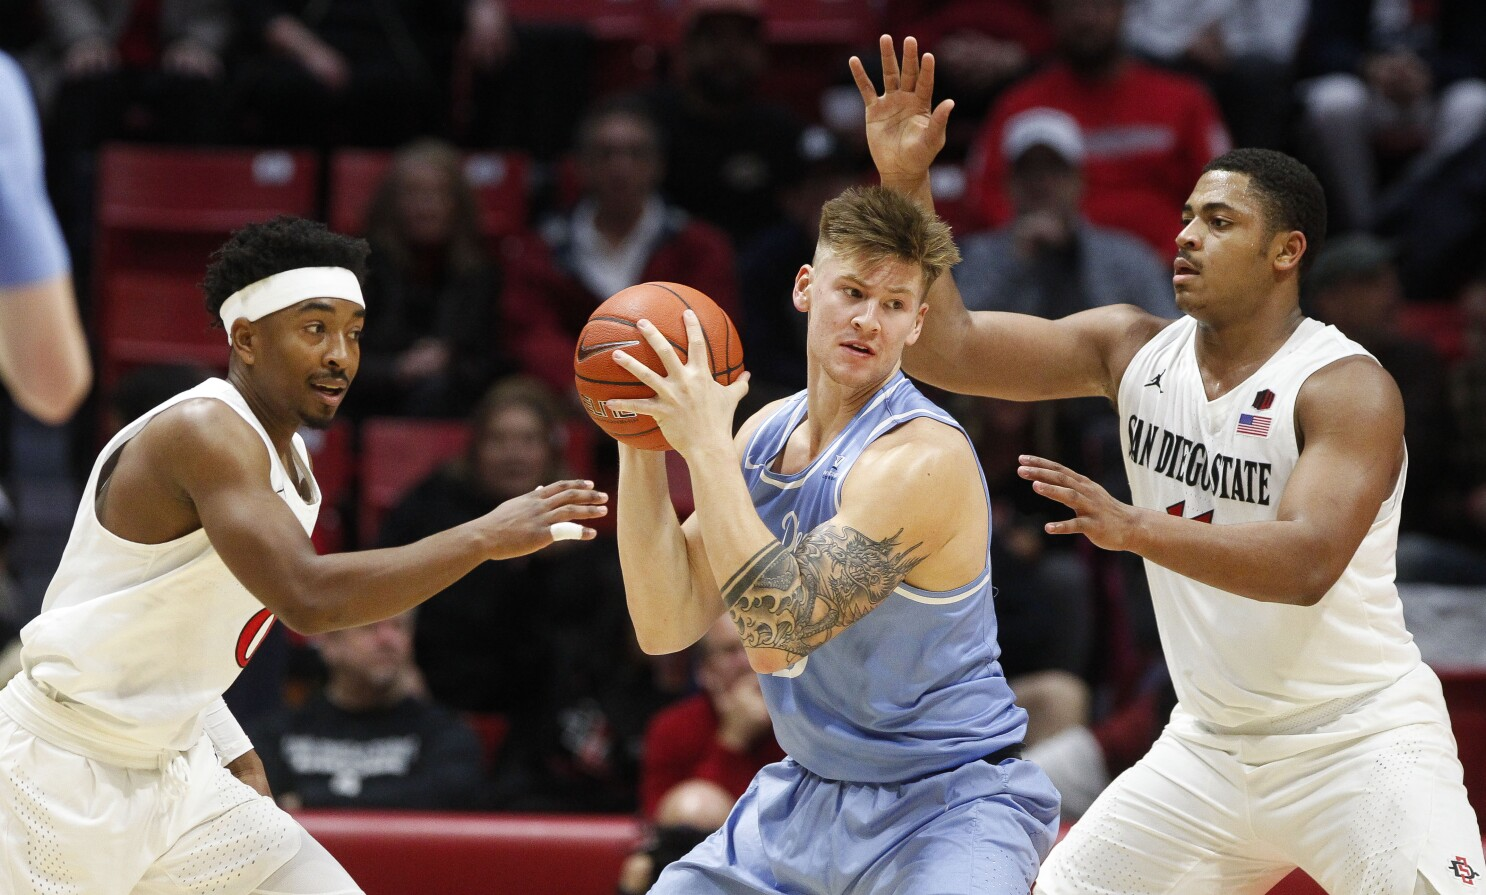 Will SDSU and USD continue their basketball series after this year?